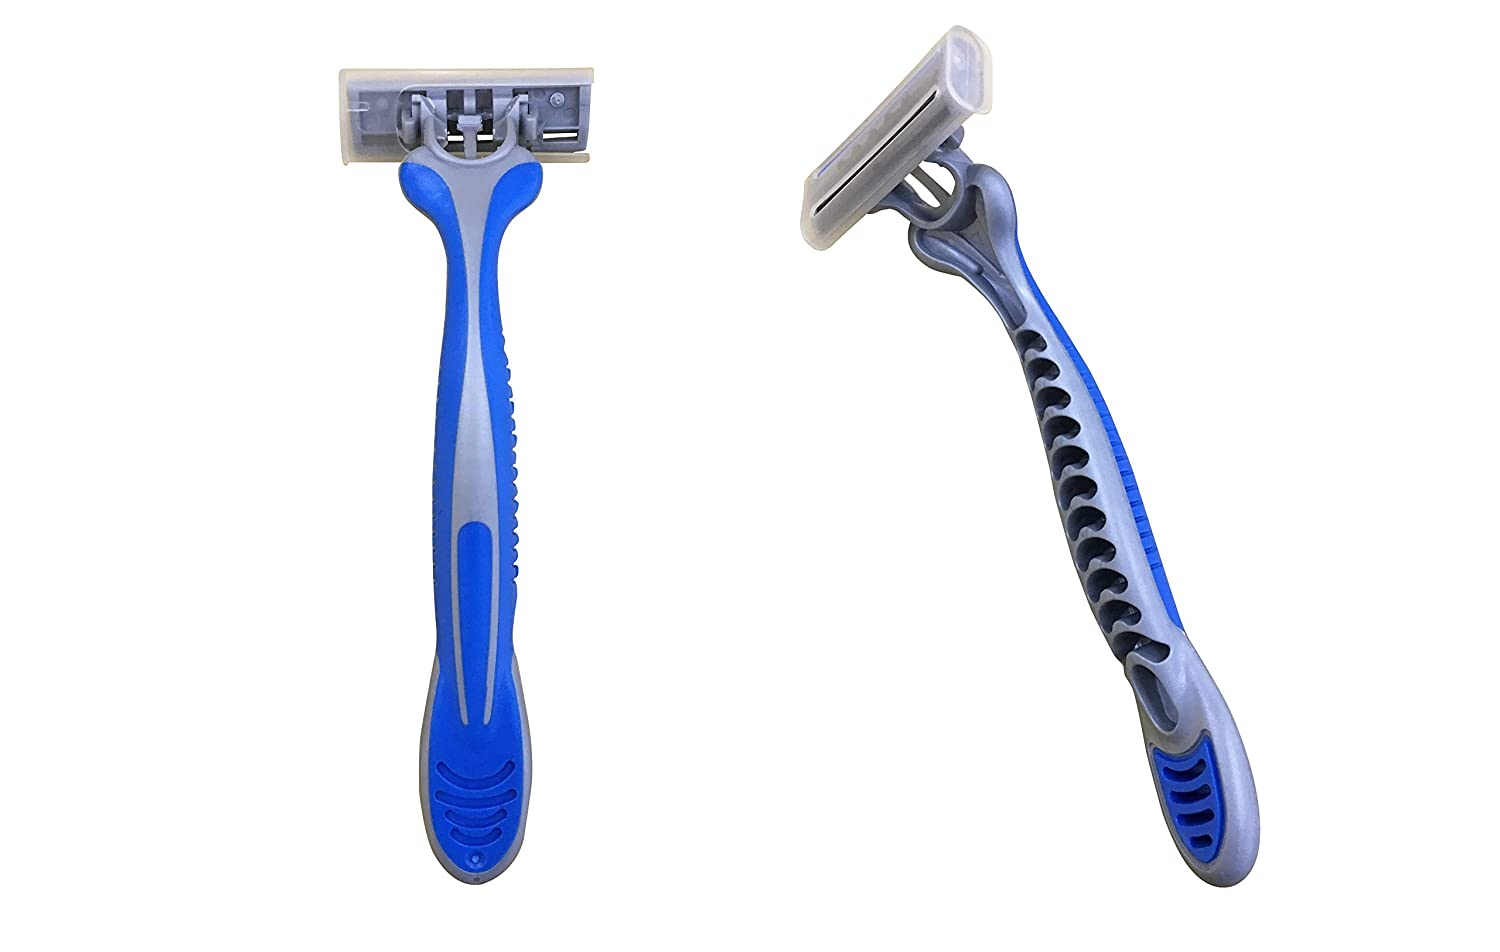 Hungstrong MAX Triple Blade Razors - Wholesale Box of 100 Disposable Safety Razors - 3 Stainless Steel Blades with Platinum/Teflon Coating - Pivoting Head - Vitamin E & Aloe Vera Lubricating Strip